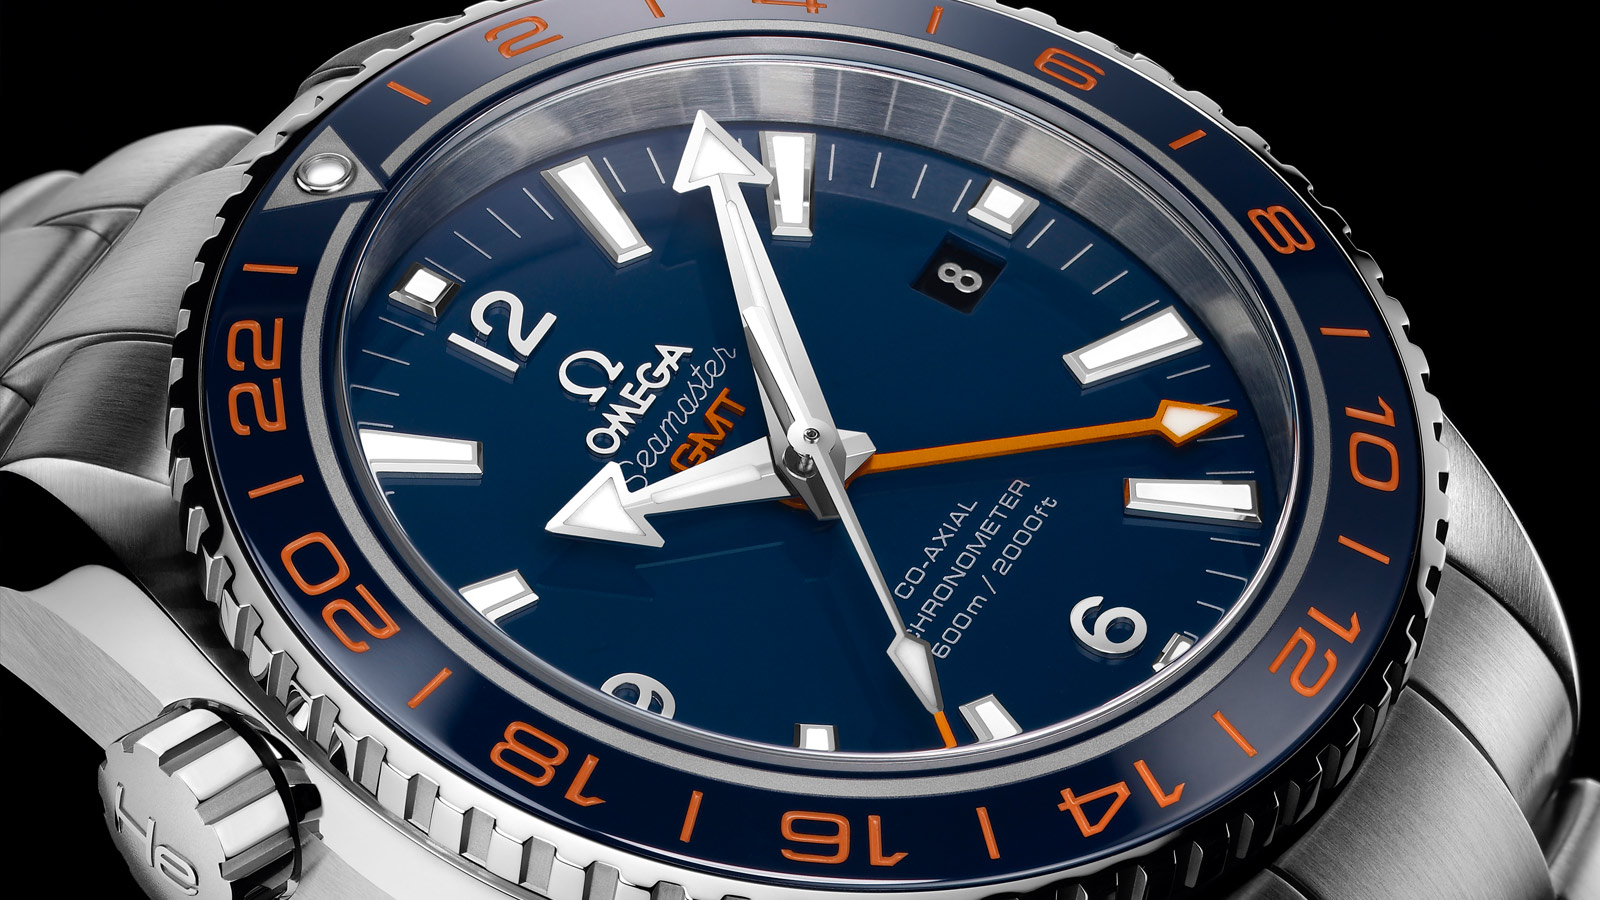 Seamaster プラネットオーシャン Planet Ocean 600M Omega Co‑axial GMT 43.5 mm - 232.30.44.22.03.001 - ビュー 1